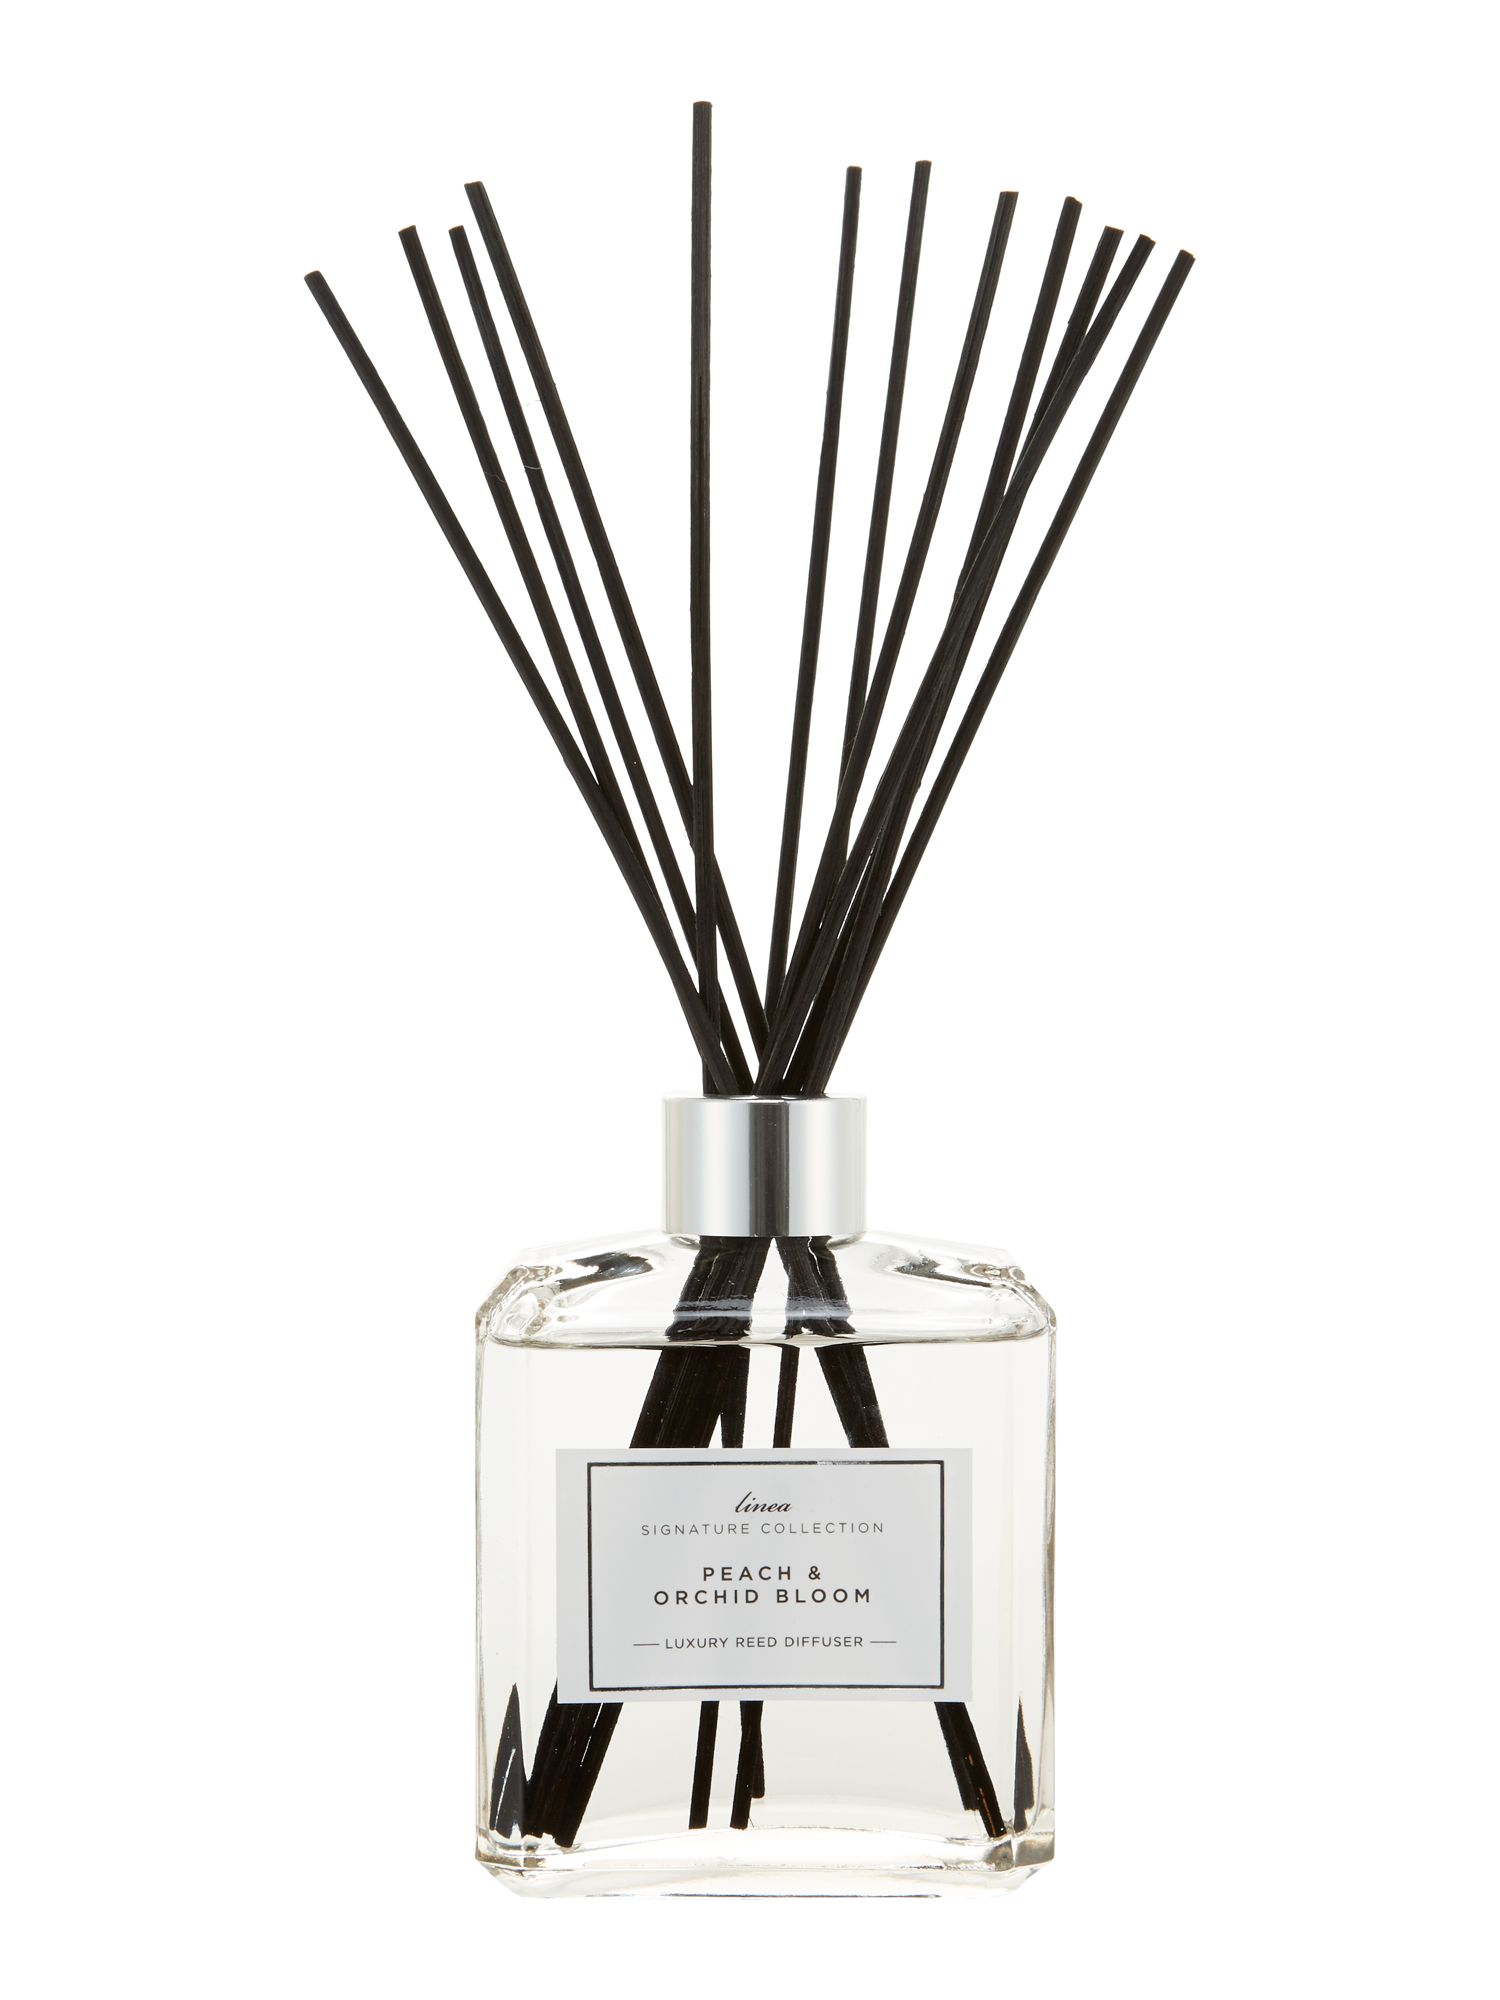 Peach & orchid bloom diffuser